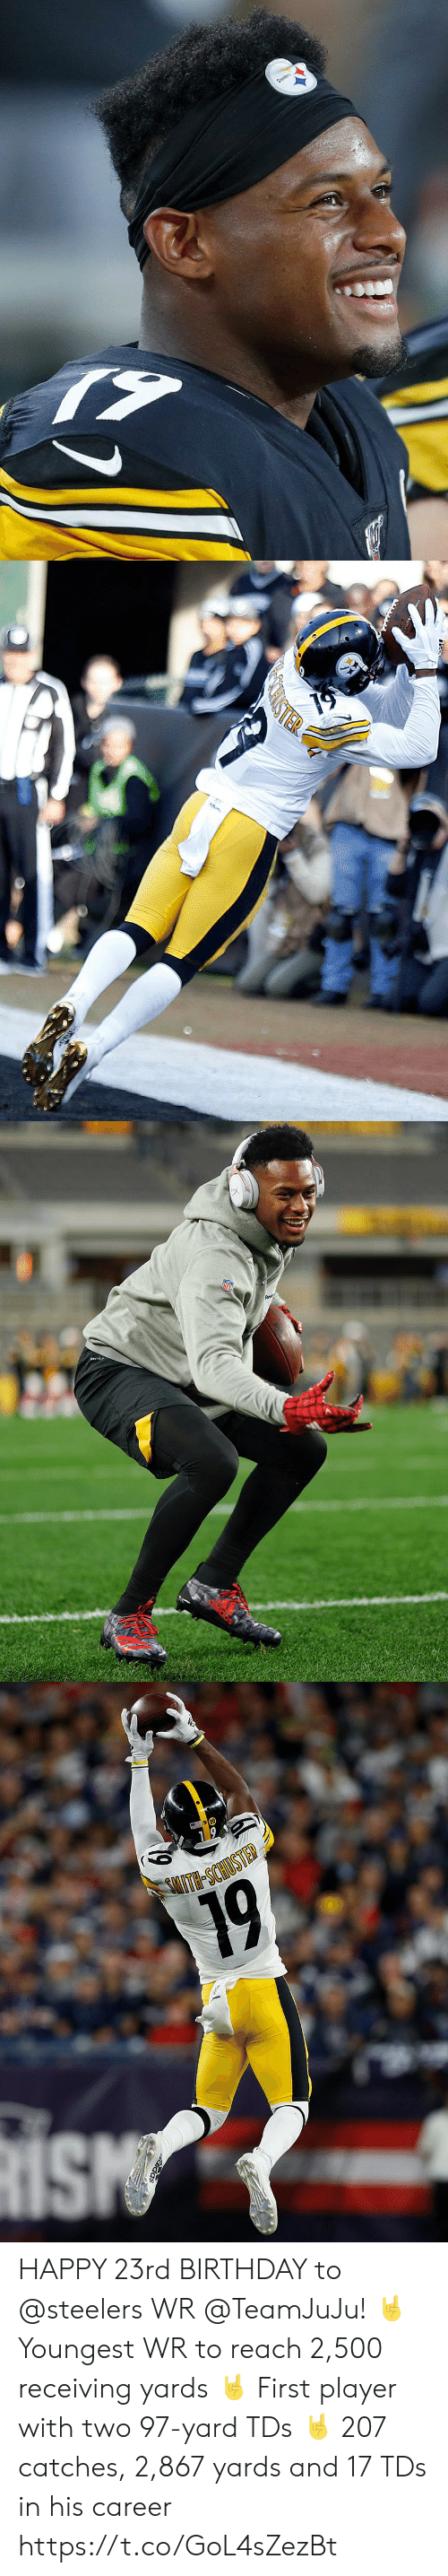 Birthday, Memes, and Sith: Steelers   TER   DR-FIT   SITH-SCHIOSTED  19 HAPPY 23rd BIRTHDAY to @steelers WR @TeamJuJu! 🤘 Youngest WR to reach 2,500 receiving yards 🤘 First player with two 97-yard TDs 🤘 207 catches, 2,867 yards and 17 TDs in his career https://t.co/GoL4sZezBt